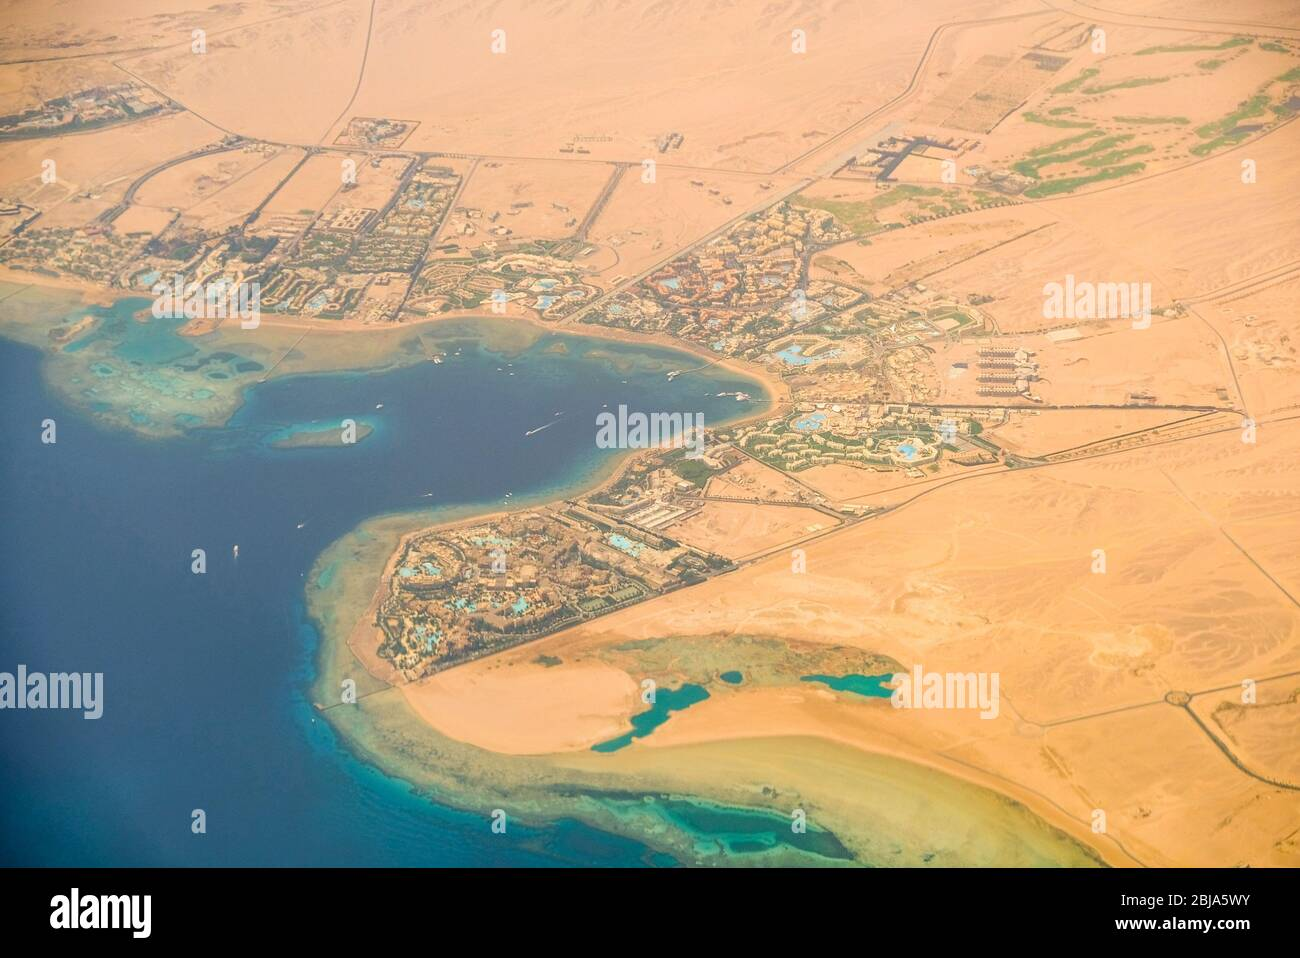 Aerial View Of The Red Sea Tourist Resorts In Hurghada Egypt Stock Photo Alamy